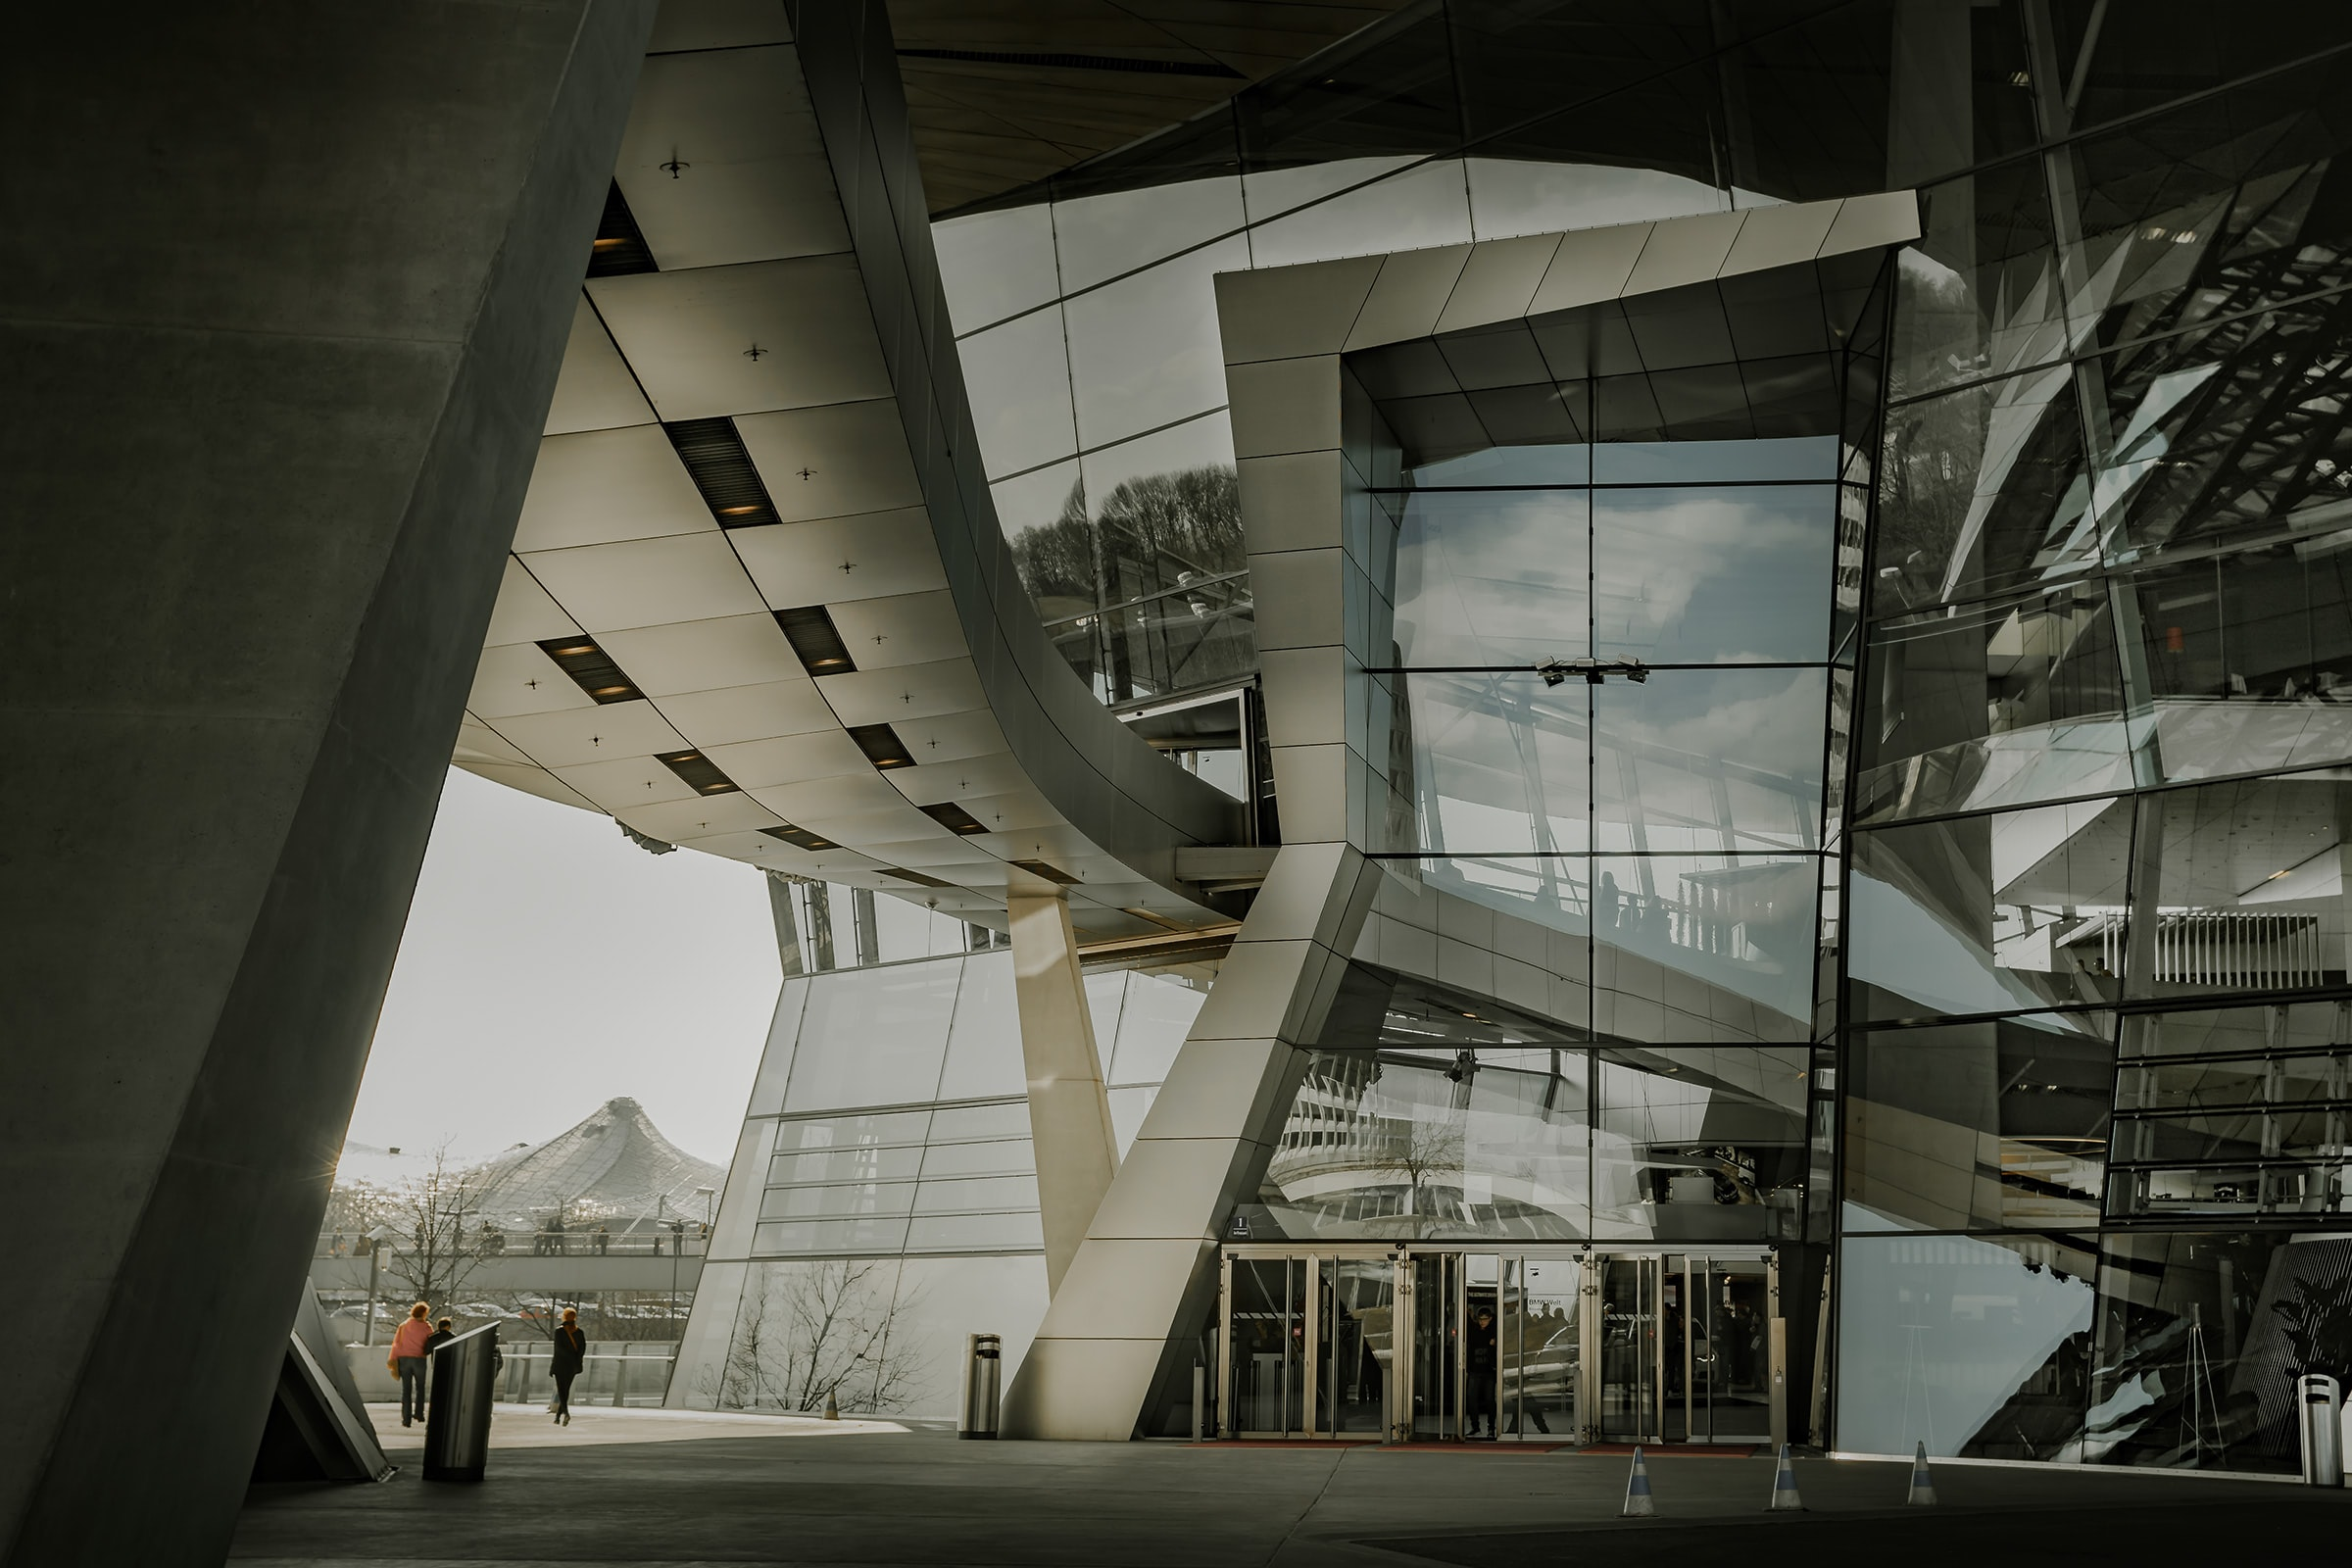 architectural photography of a gray building